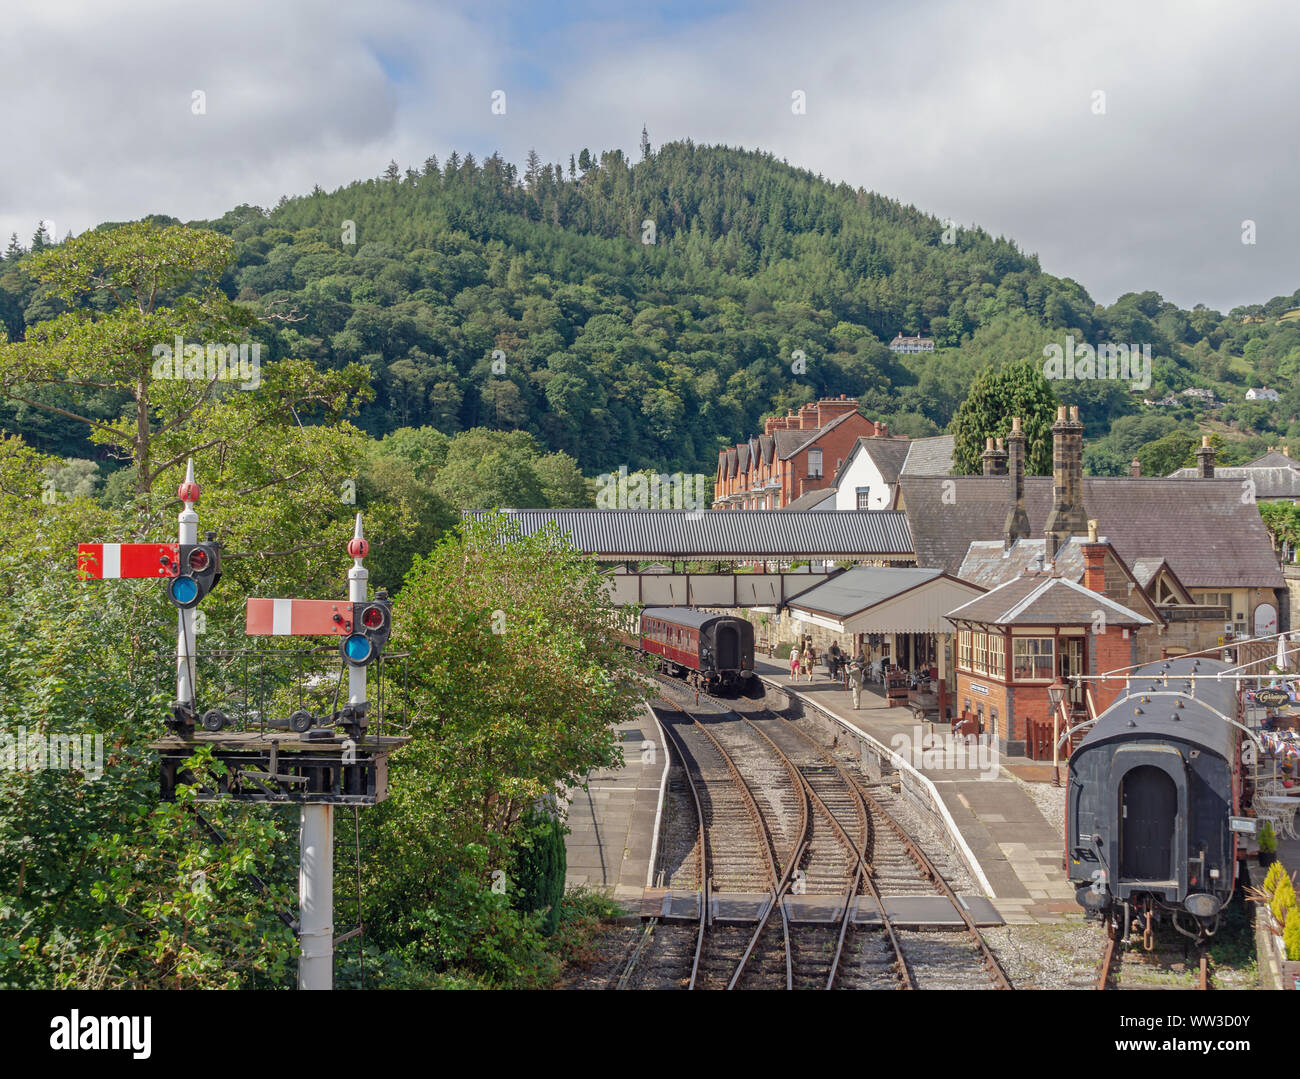 Llangollen railway station underneath a tree covered hill.  Railway carriages are in a siding and there is a signal in the foreground. Stock Photo